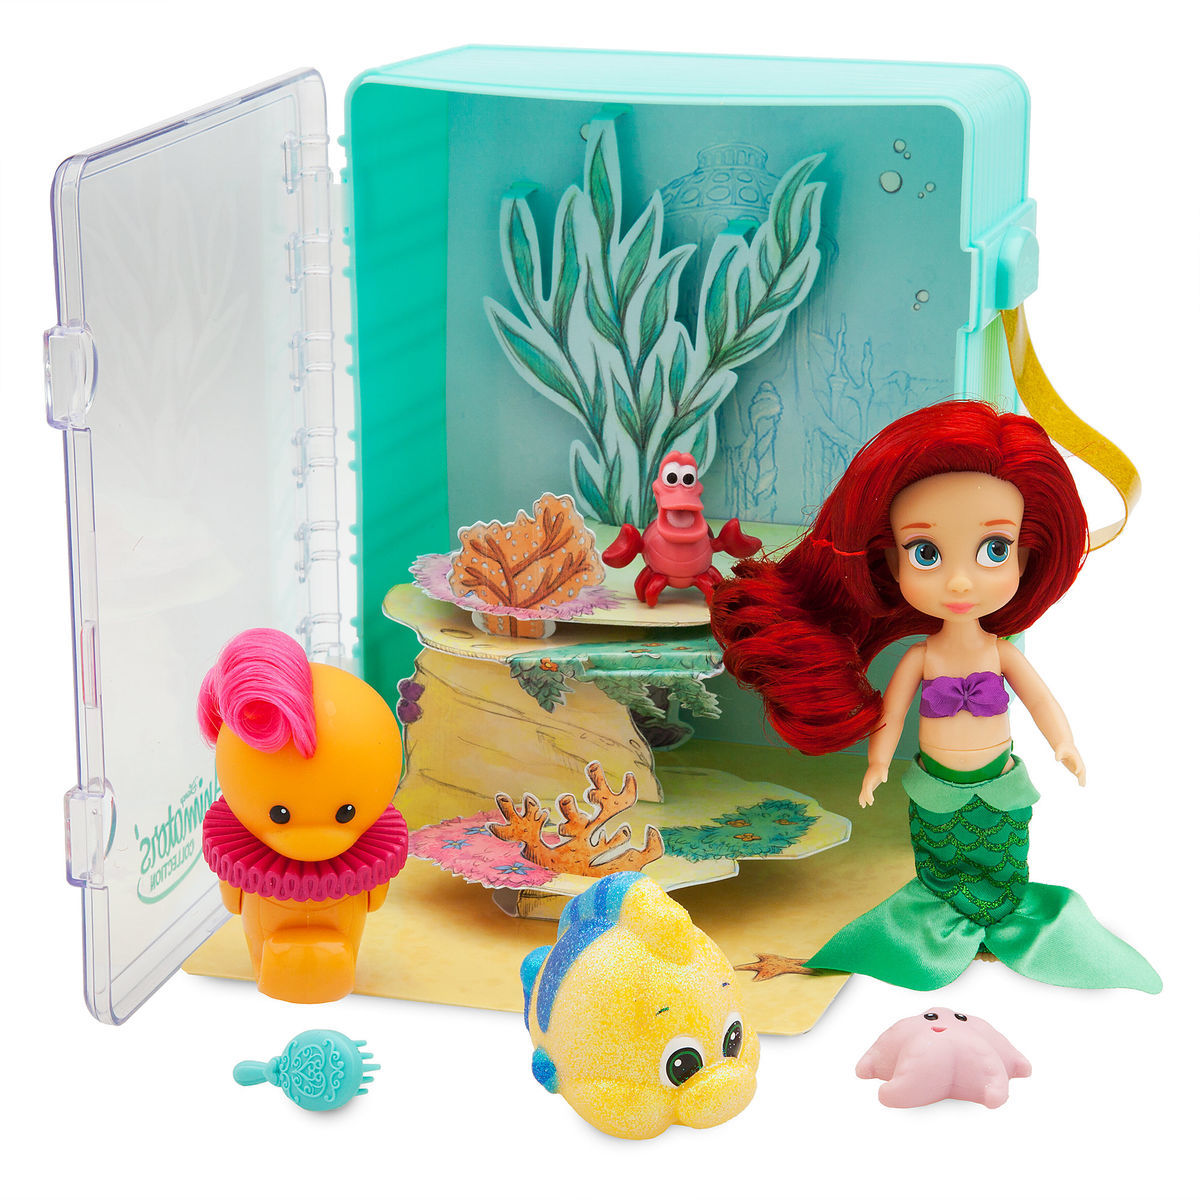 ffc84f3b946 Product Image of Disney Animators  Collection Ariel Mini Doll Playset - The  Little Mermaid